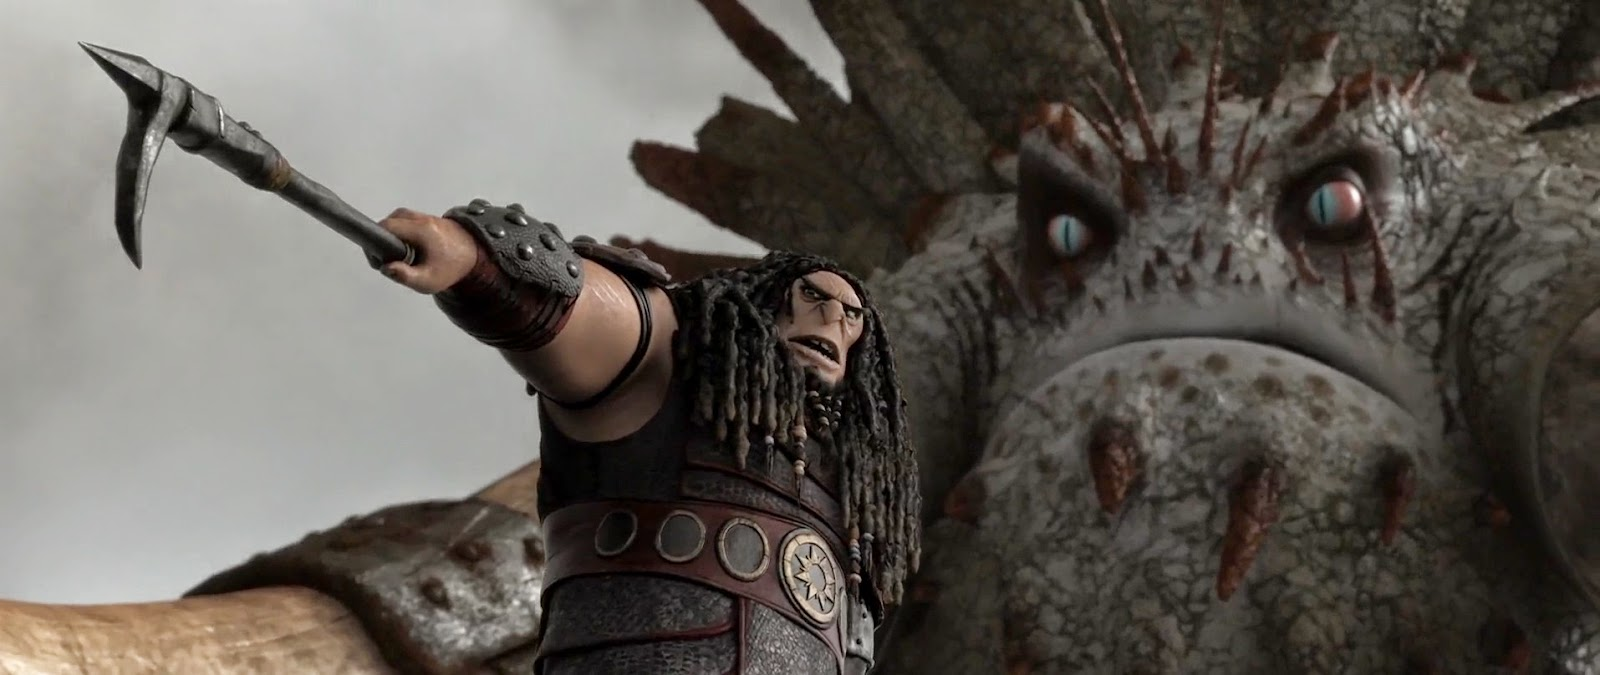 How to train your dragon 2 2014 1080p hd english movie - How to train your dragon hd download ...